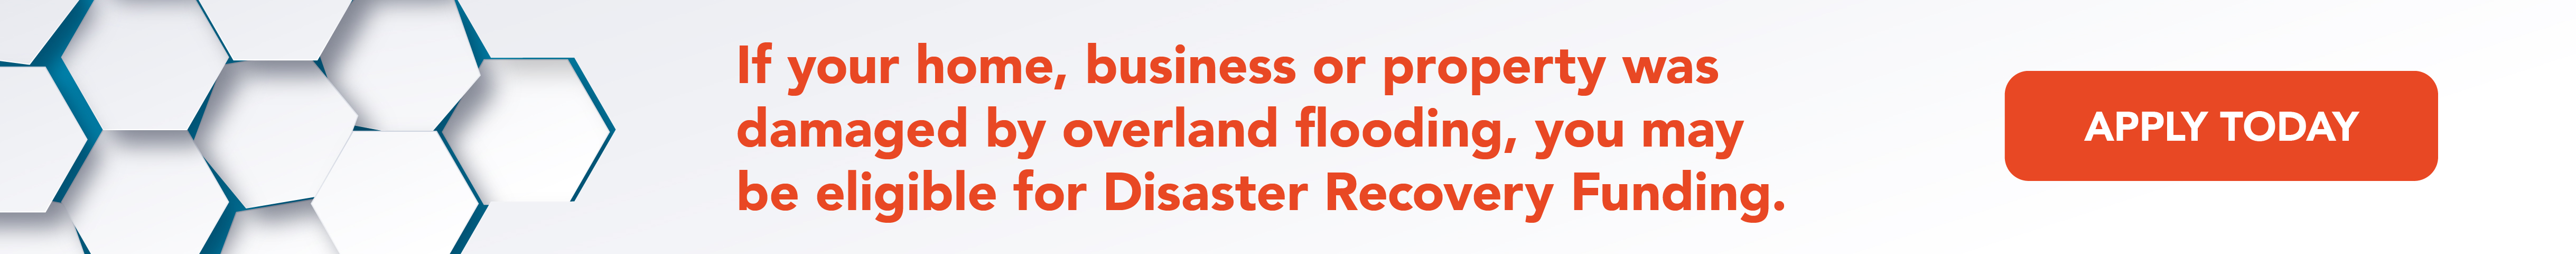 Disaster Recovery Program